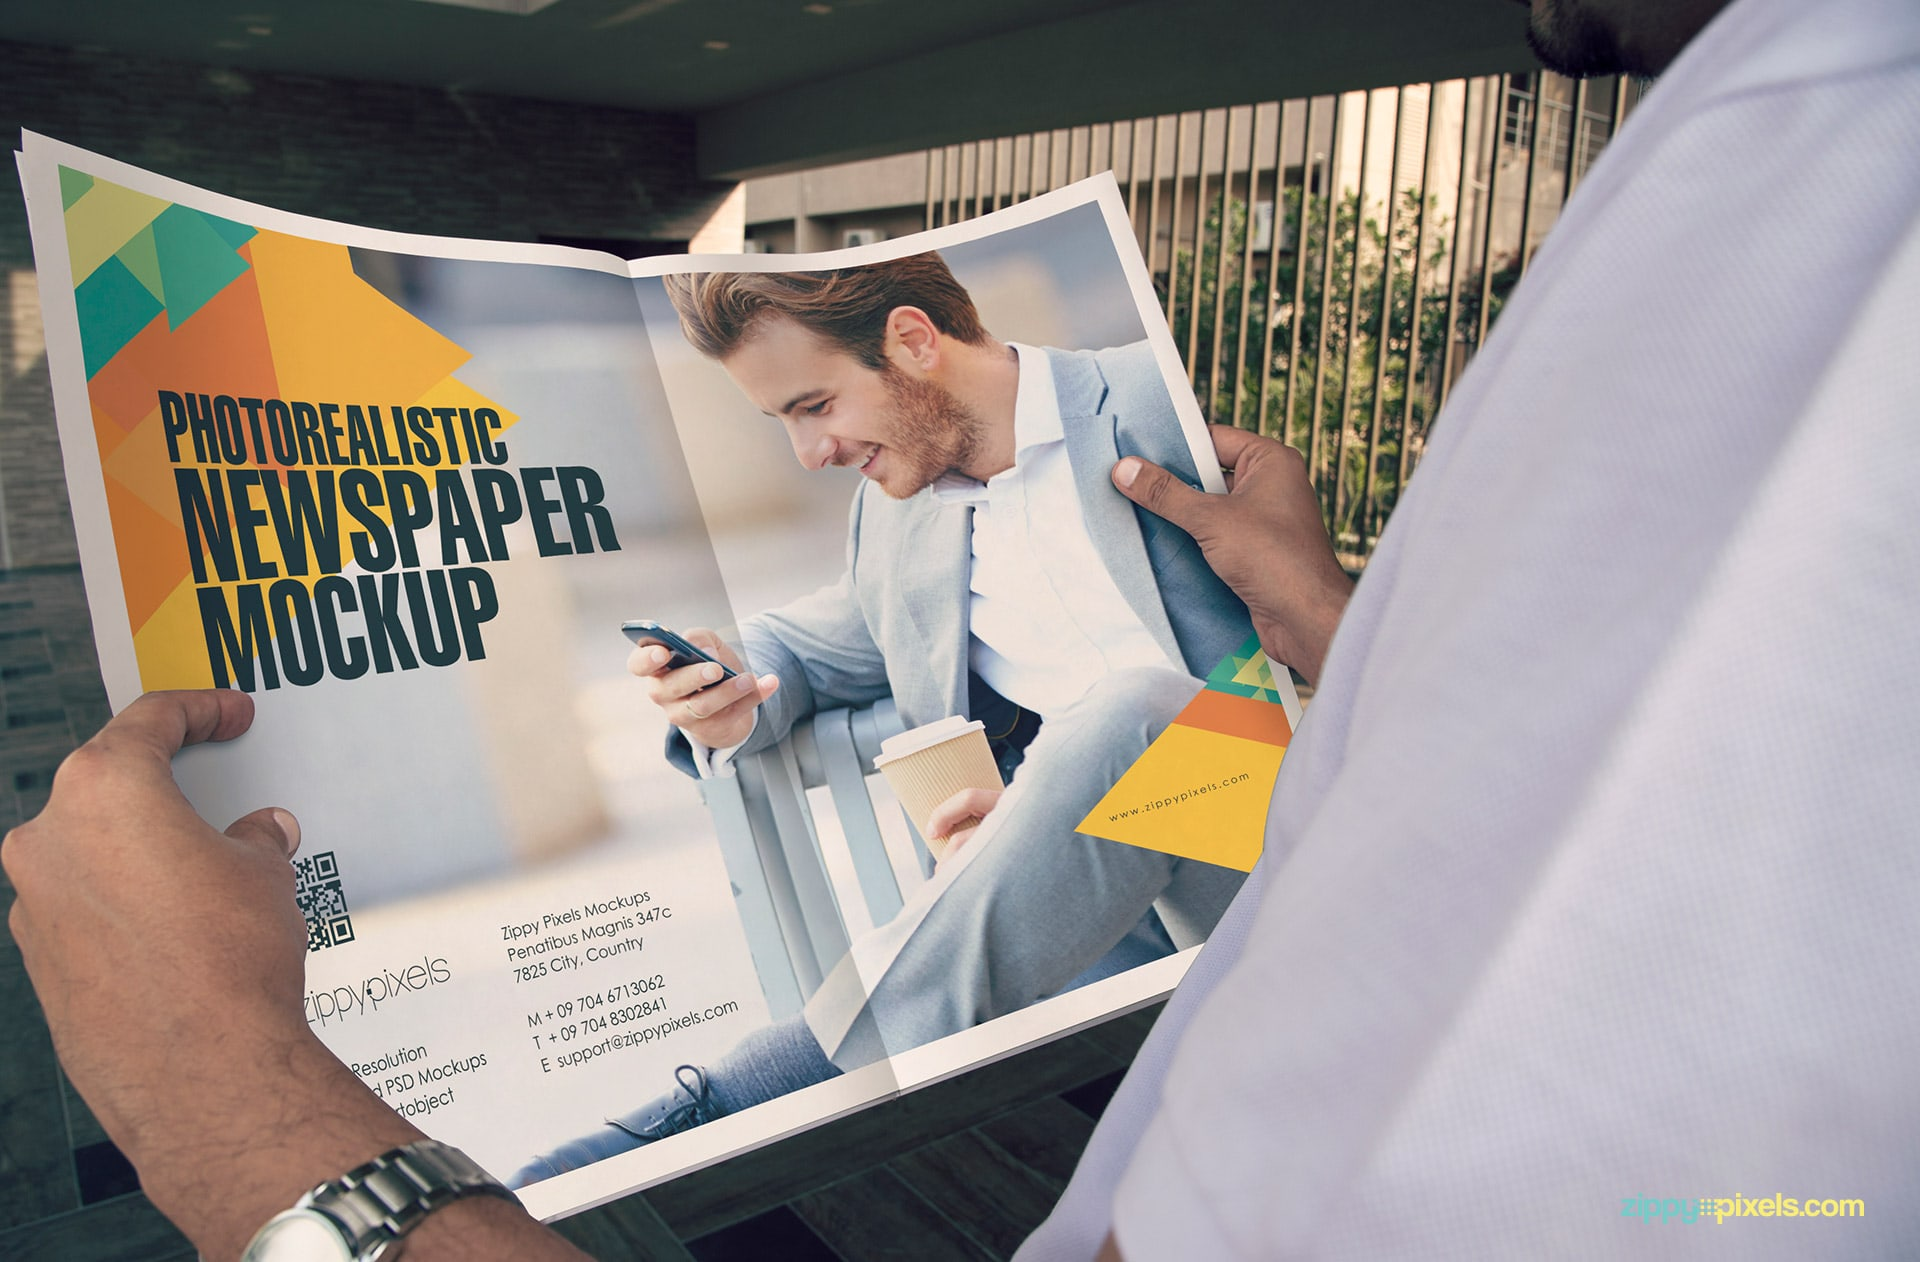 newspaper ad mockup showing person holding newspaper in hands showing 2 page double truck ad